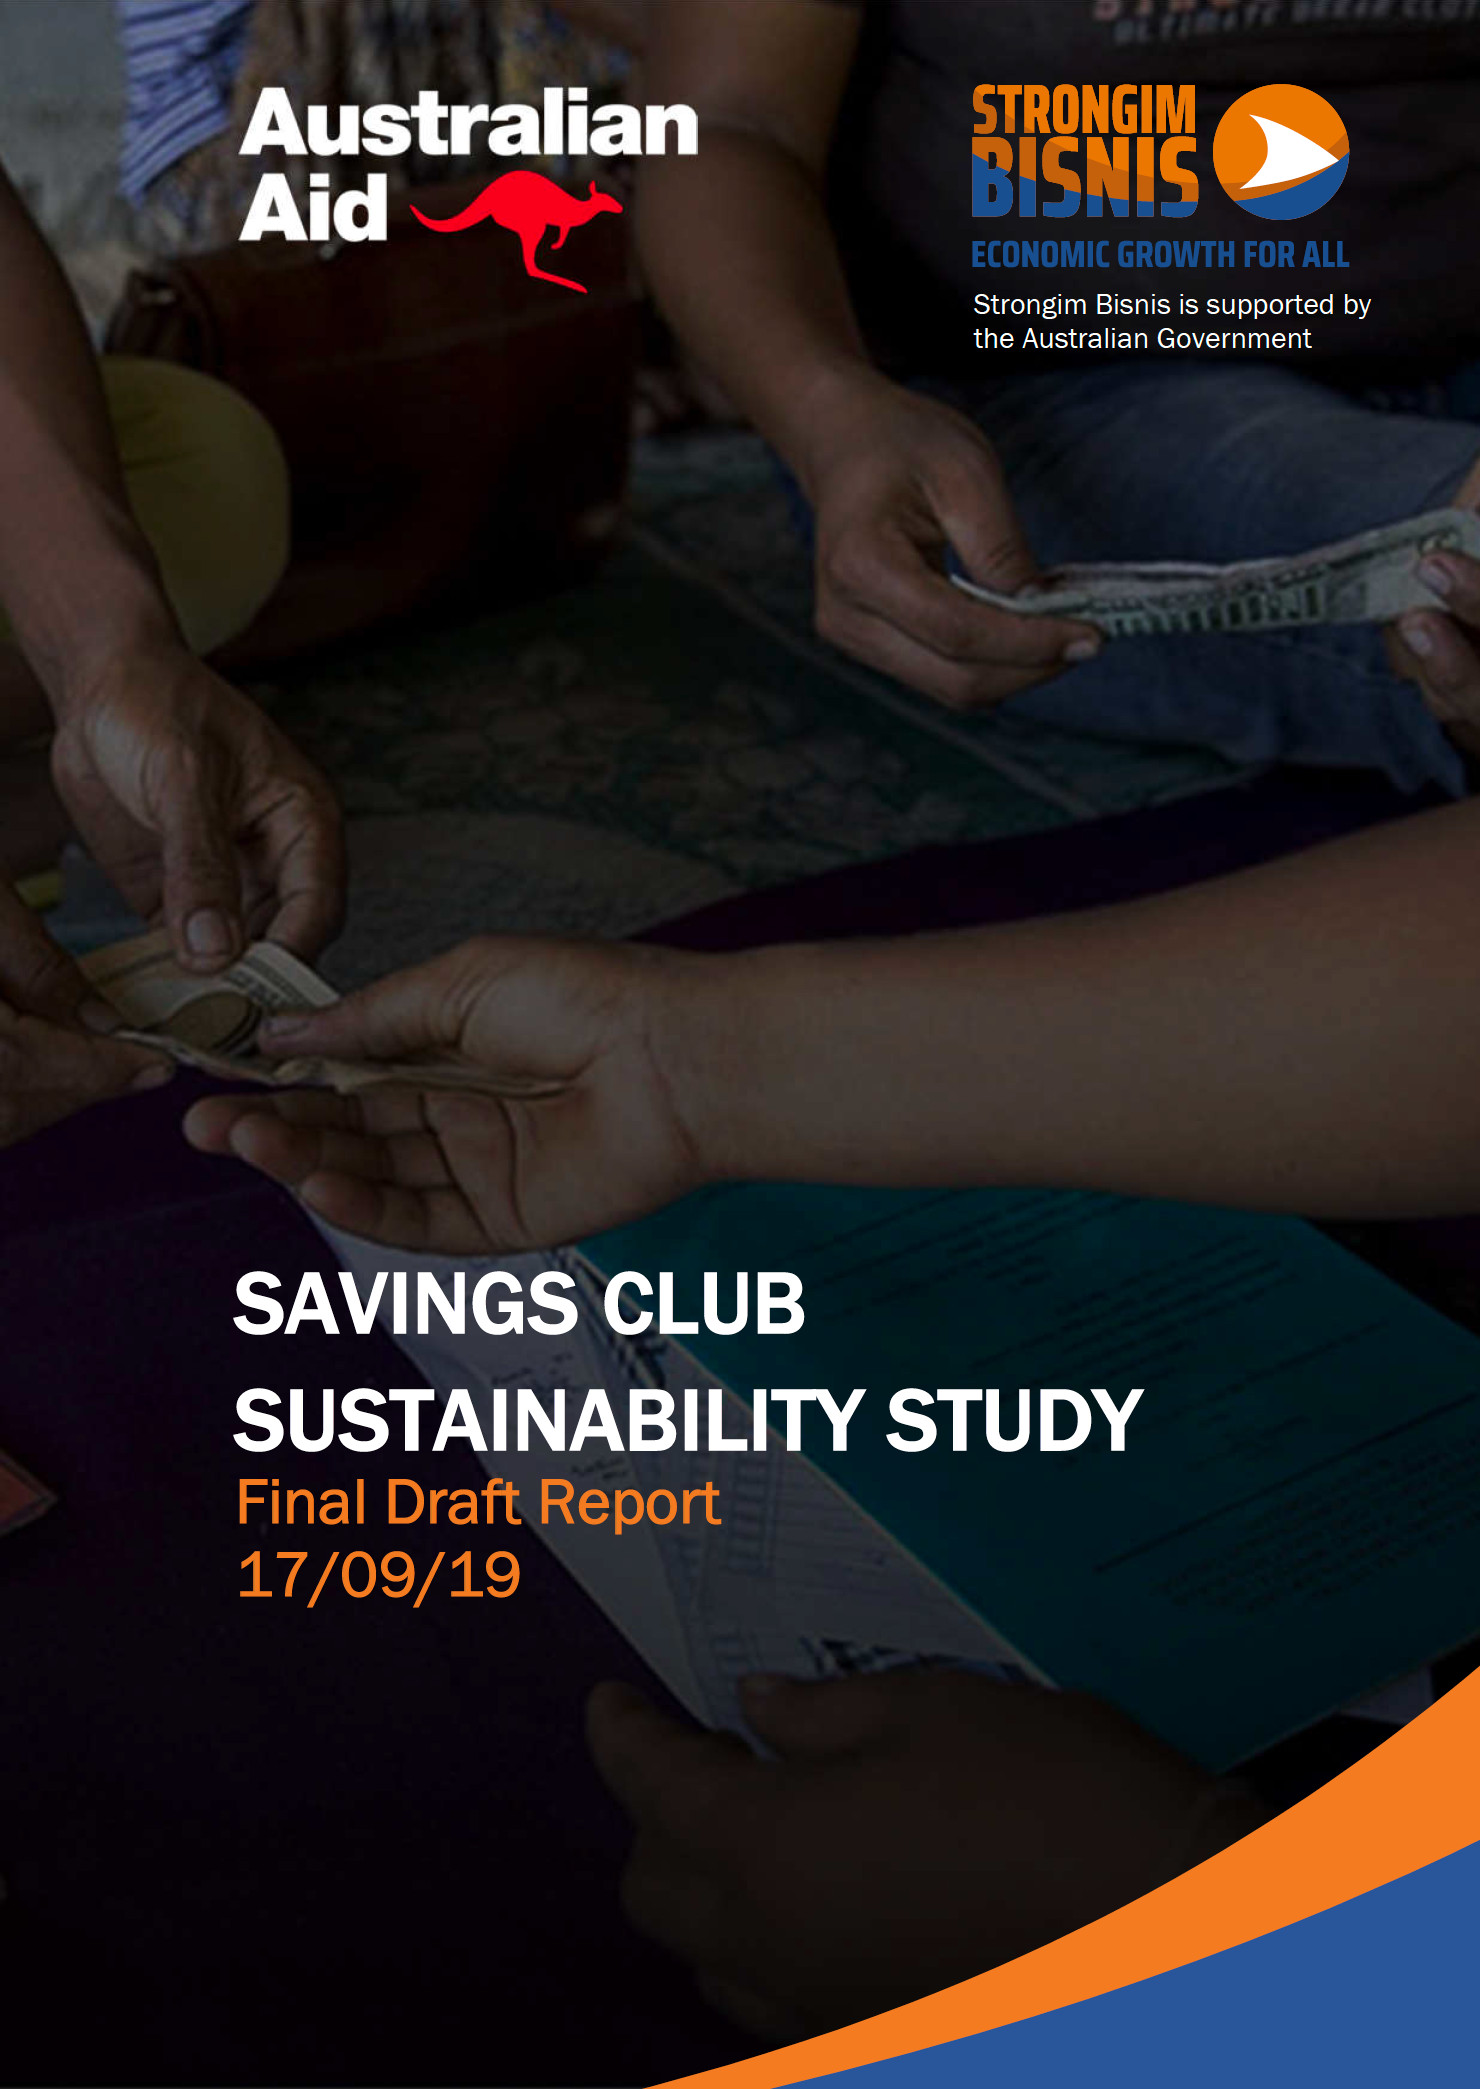 Study on Savings Clubs and Sustainability, 2019